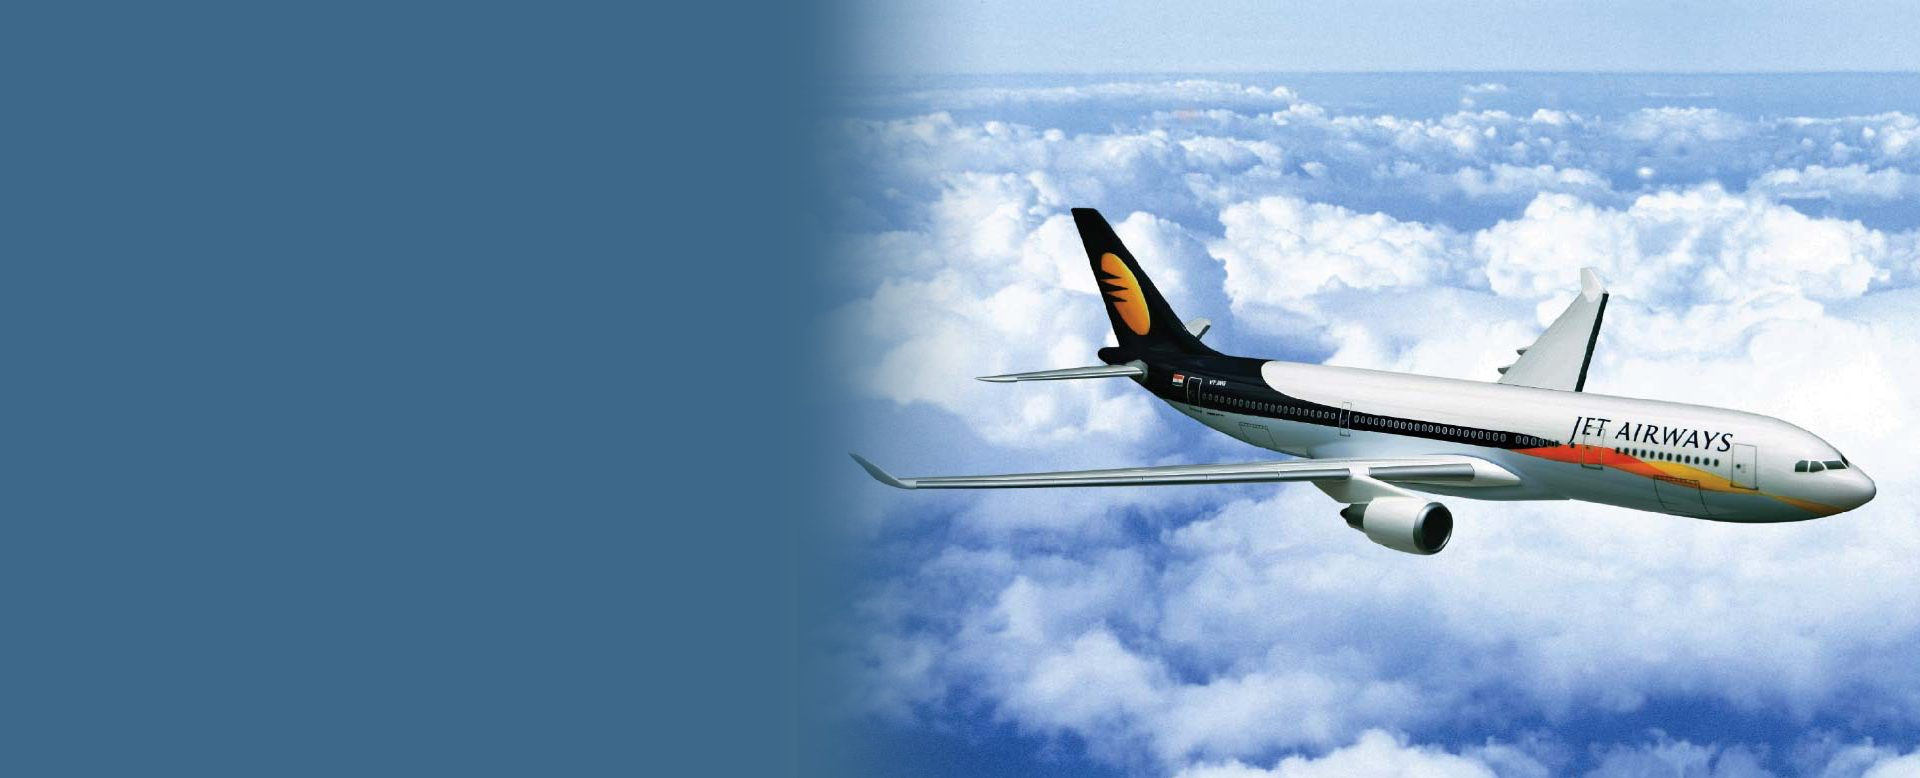 """<a href=""""http://asiindia.org/2018/07/26/10-discount-on-jet-airways/""""  style=""""color:#fff"""">Click here to Know More</a>"""